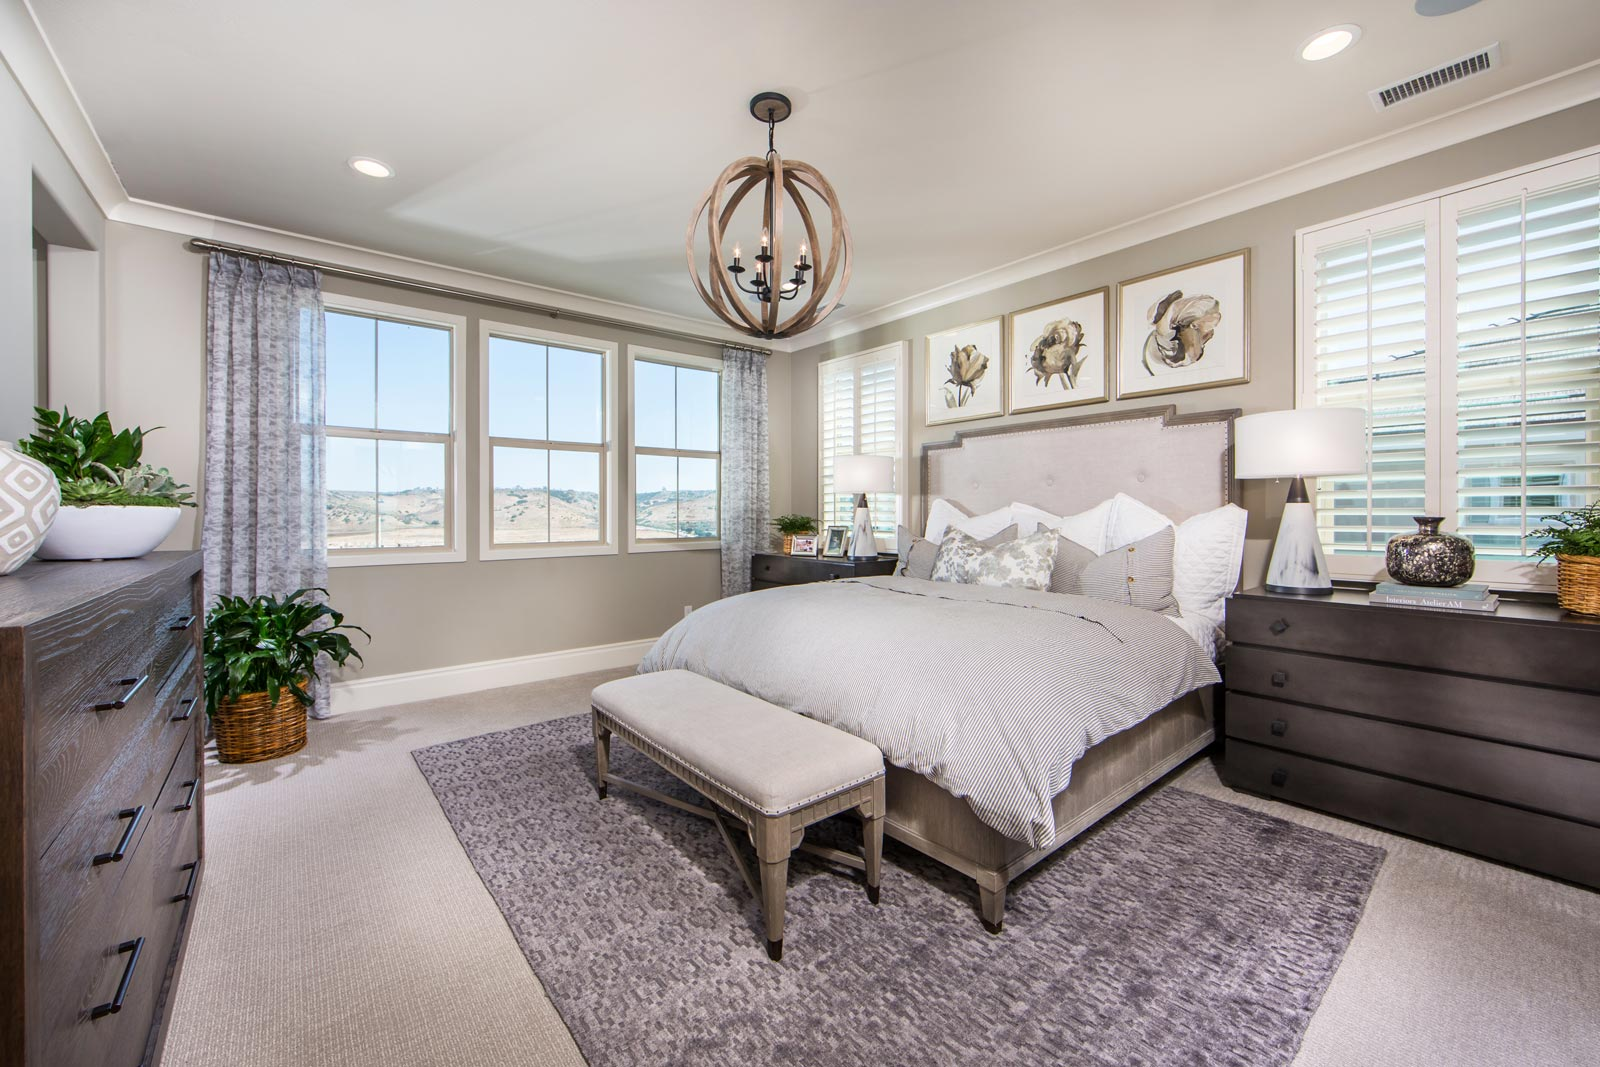 Residence 3 Master Bedroom | Haciendas at the Village of Escaya in Chula Vista, CA | Brookfield Residential